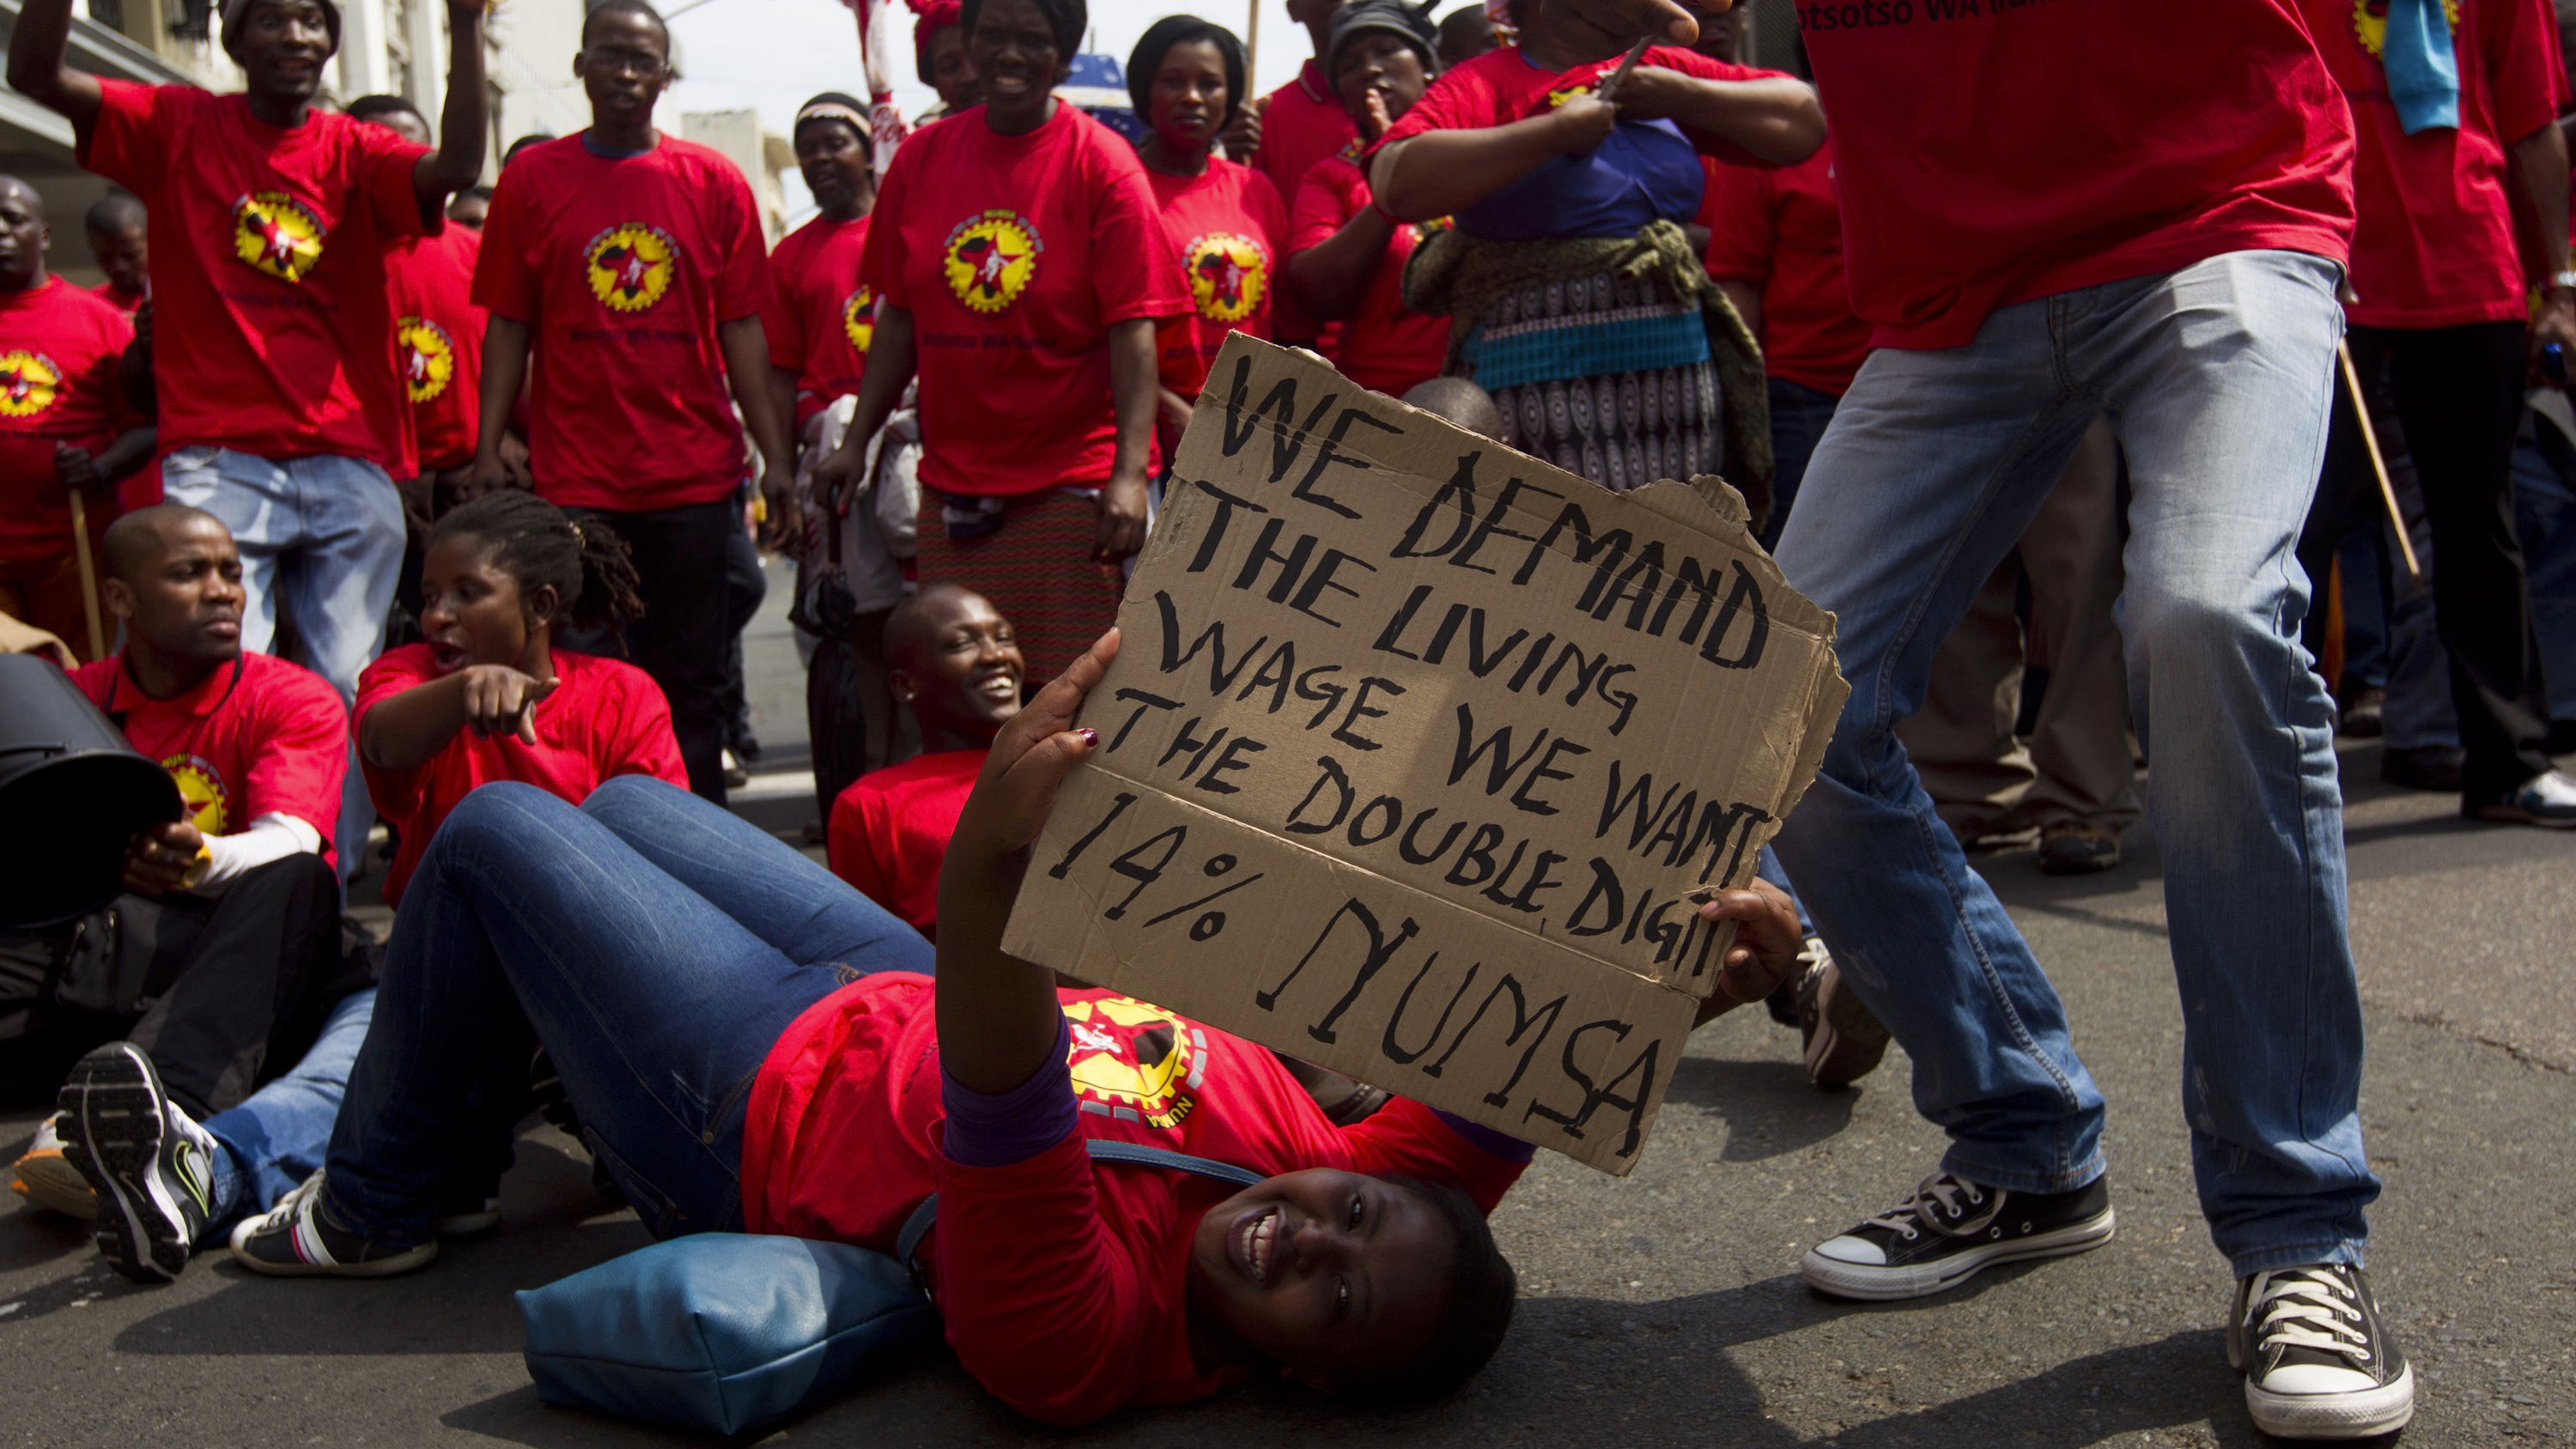 Members of the National Union of Metalworkers of South Africa (NUMSA) march through the Durban central business district, September 12, 2013. NUMSA, which represents fuel pump attendants, continues their nationwide strike to demand better wages.  REUTERS/Rogan Ward (SOUTH AFRICA - Tags: BUSINESS EMPLOYMENT) - RTX13INV